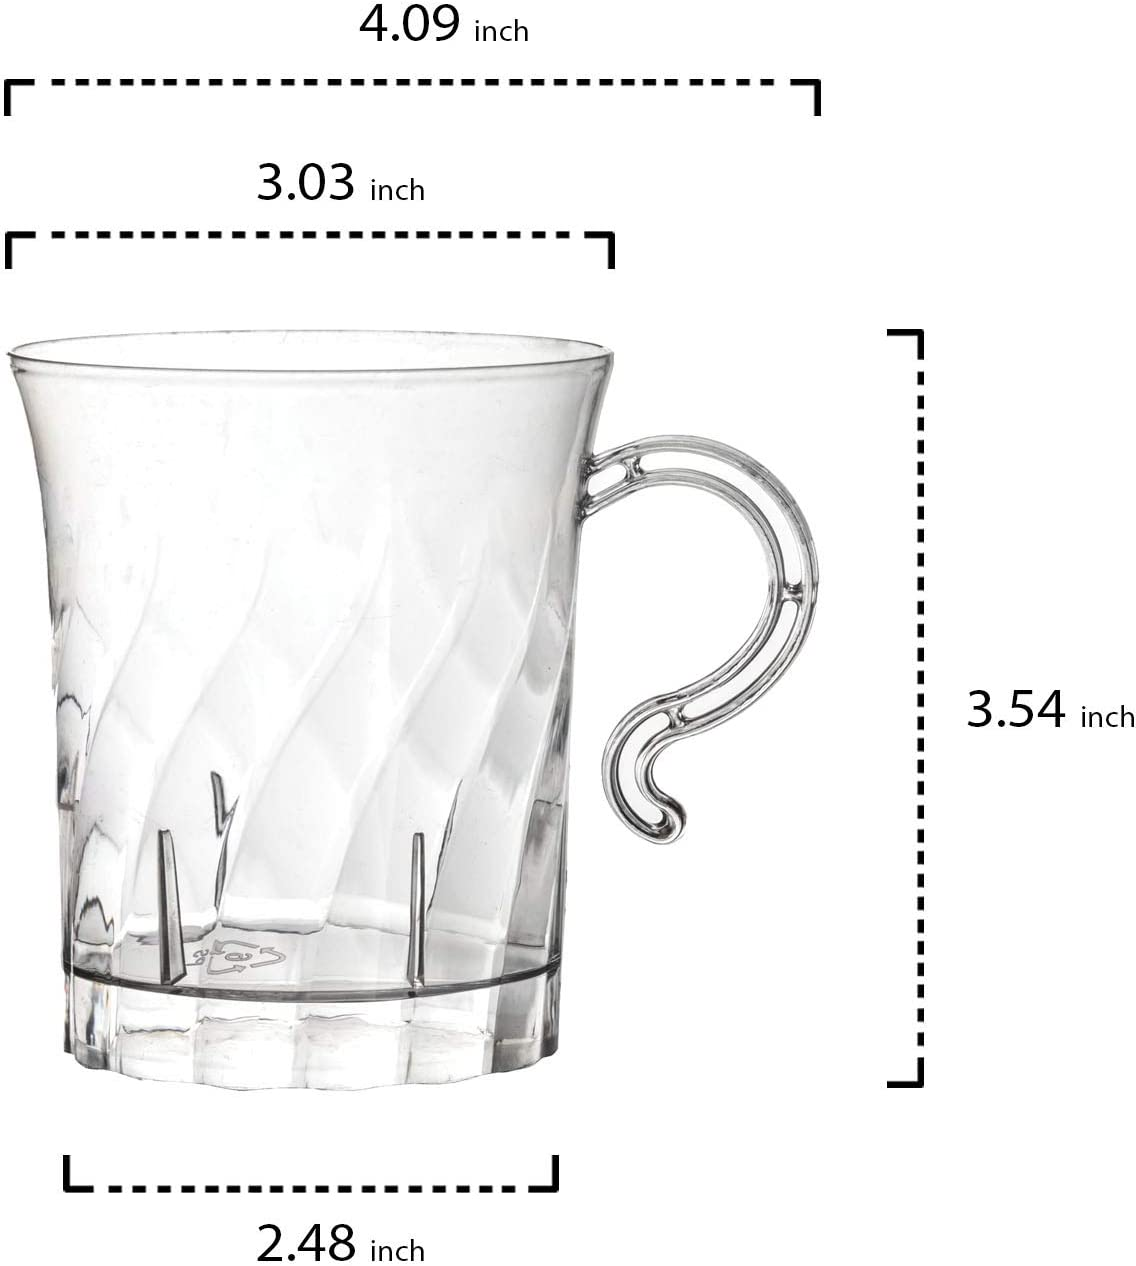 Swirled Coffee//Tea// Party Cups With Handle Clear 10 Count Plus 1 Punch Bowl and 1 Ladle Party Essentials Hard Plastic 8 oz